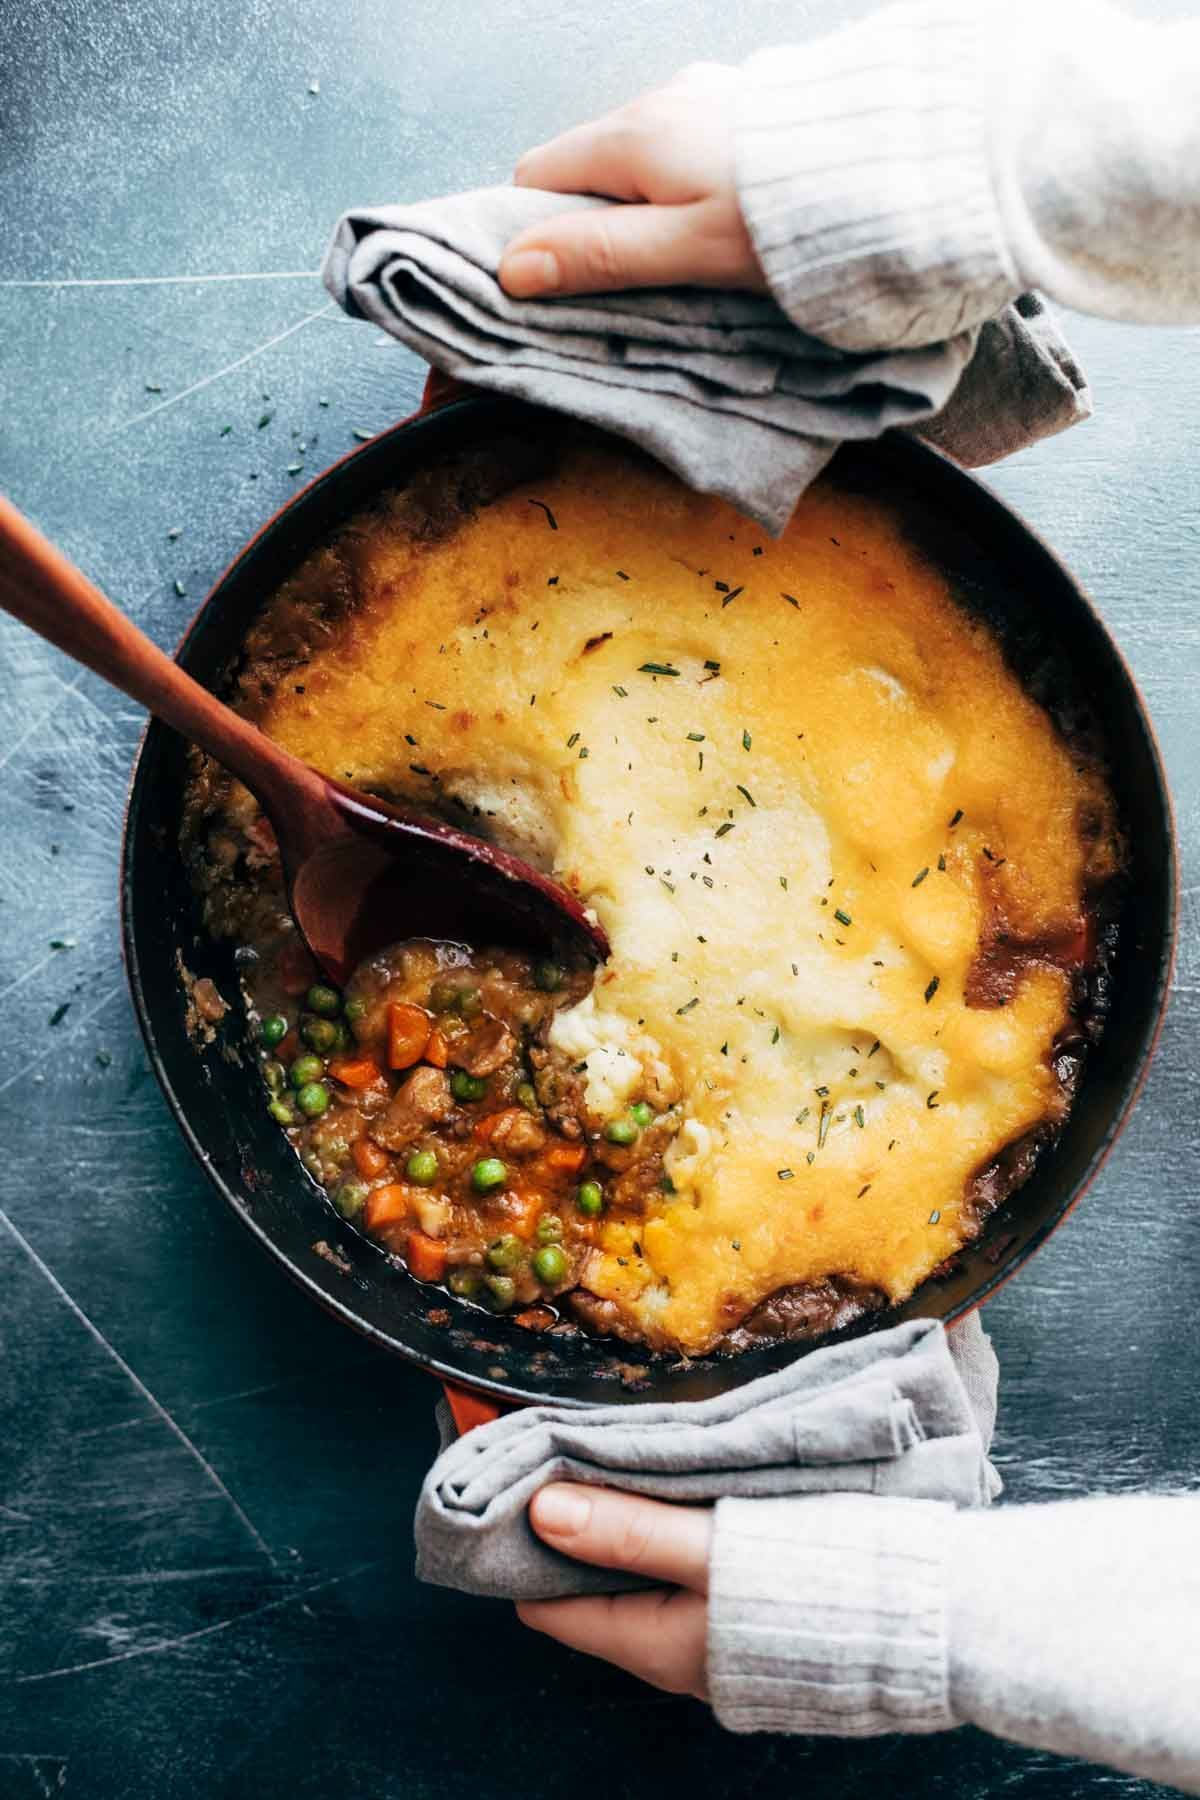 Pie Vegetarian Shepherd's Pie ♡ saucy mushrooms, carrots, and peas topped with creamy mashed potatoes. Real food meets comfort food! | Vegetarian Shepherd's Pie ♡ saucy mushrooms, carrots, and peas topped with creamy mashed potatoes. Real food meets comfort food! |